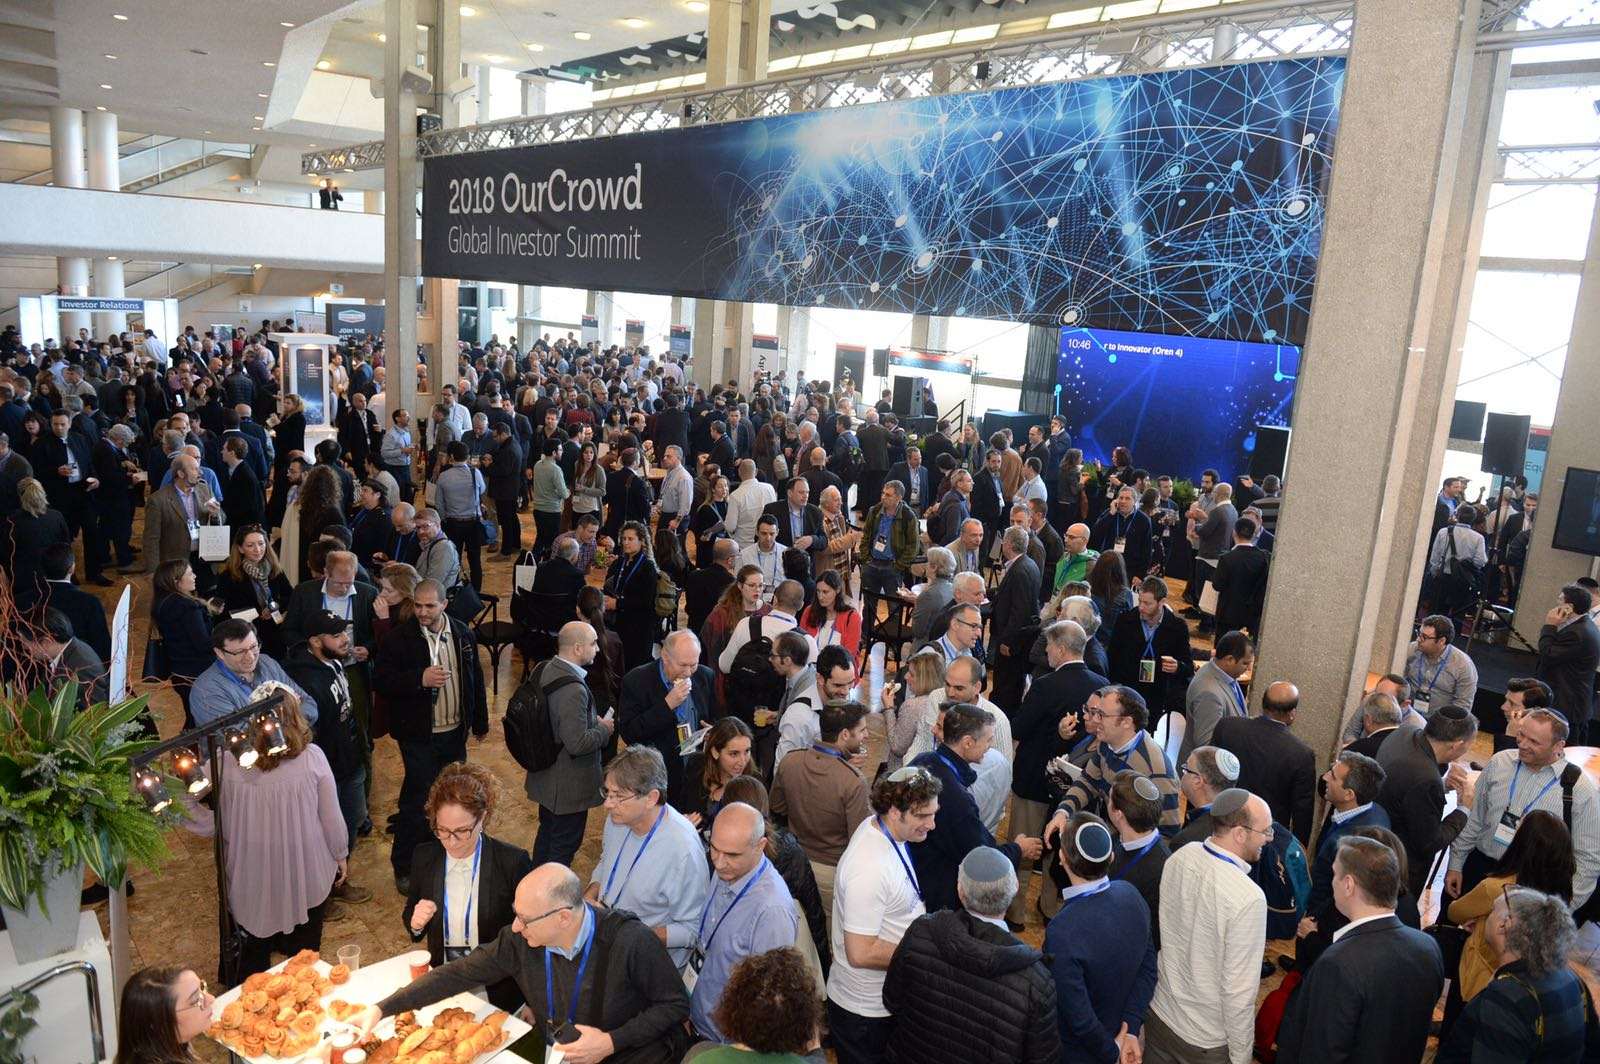 Attendees at the OurCrowd Global Investor Summit in Jerusalem, Februaty 1, 2018. Courtesy